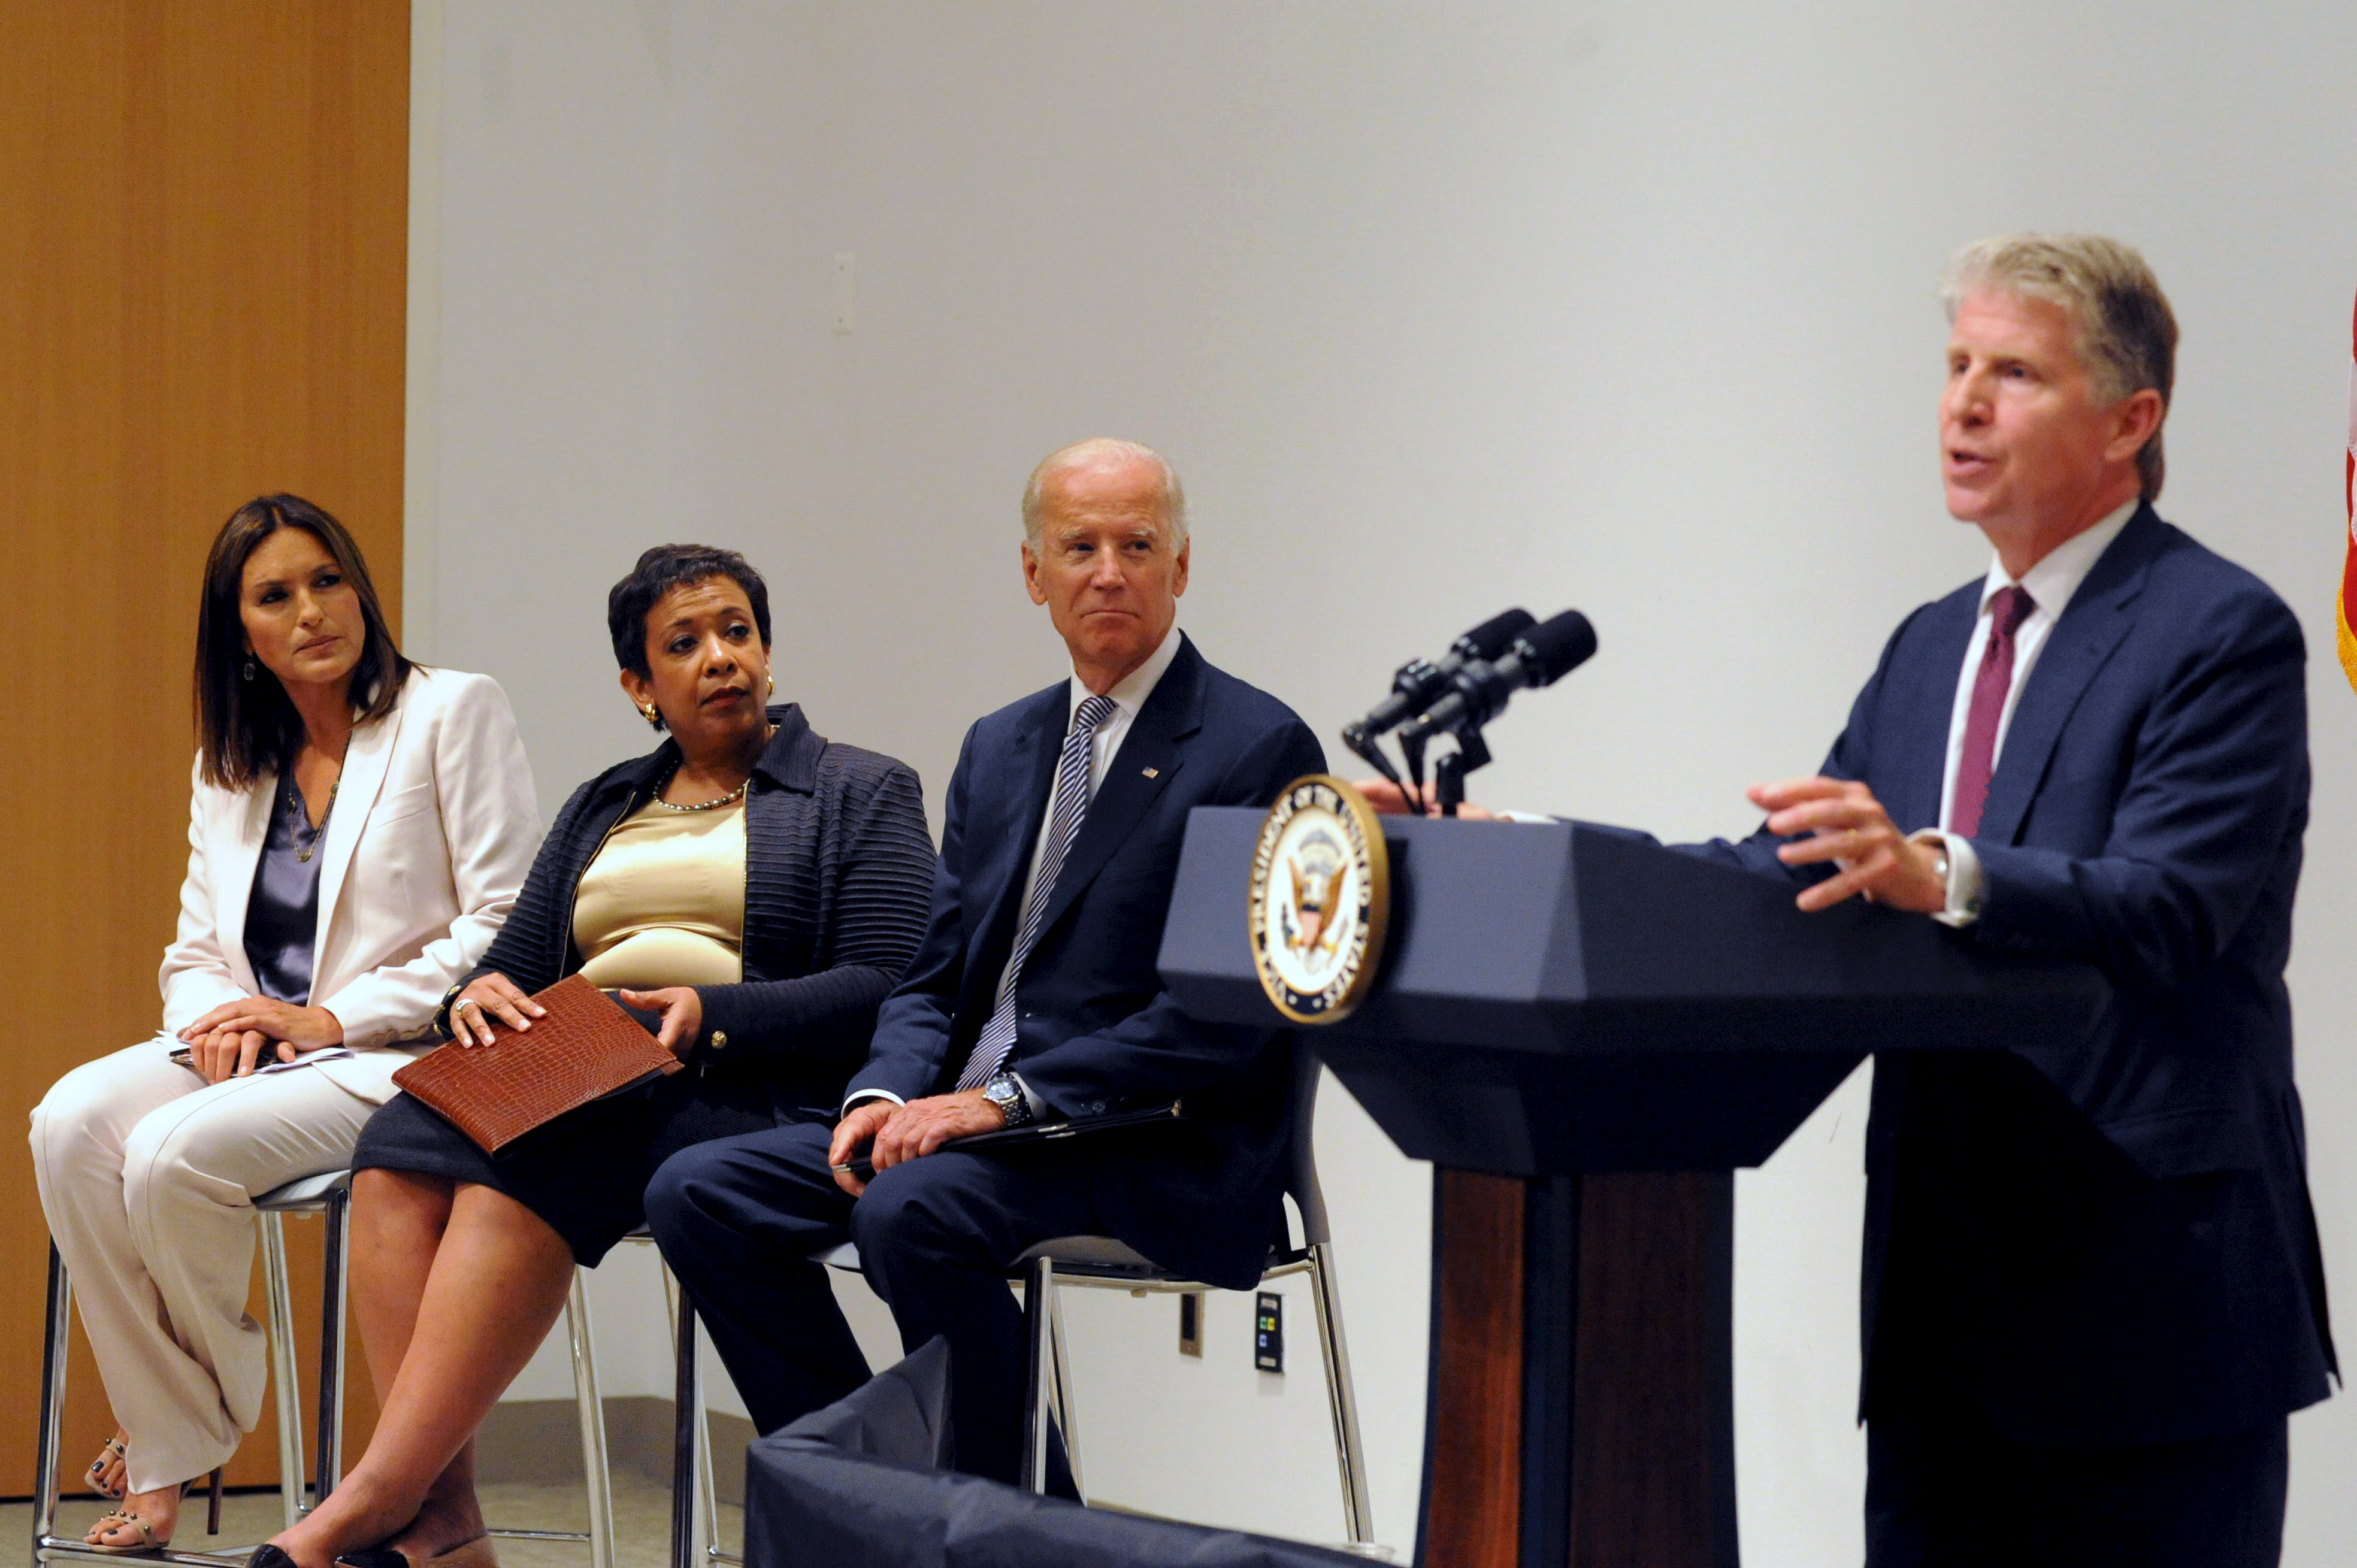 Manhattan District Attorney Cyrus R. Vance (R) speaks at the podium as U.S. Vice President Joe Biden and U.S. Attorney General Loretta B. Lynch look on with actress Mariska Hargitay (L) during an news conference in New York, September 10, 2015. REUTERS/Stephanie Keith